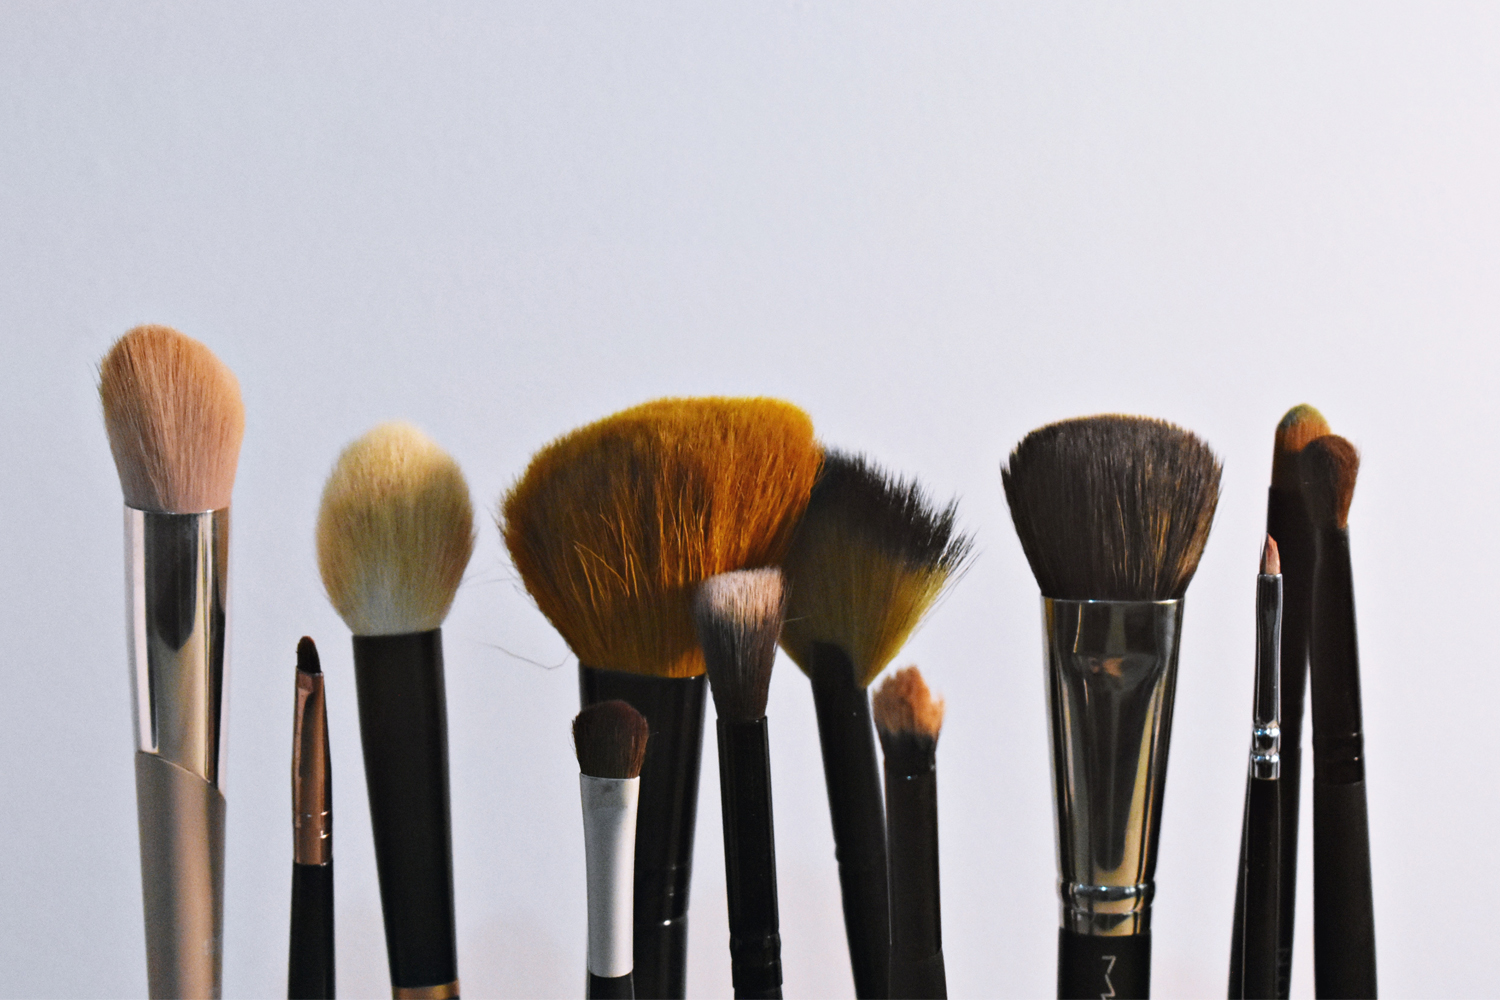 a few makeup brushes on plain background